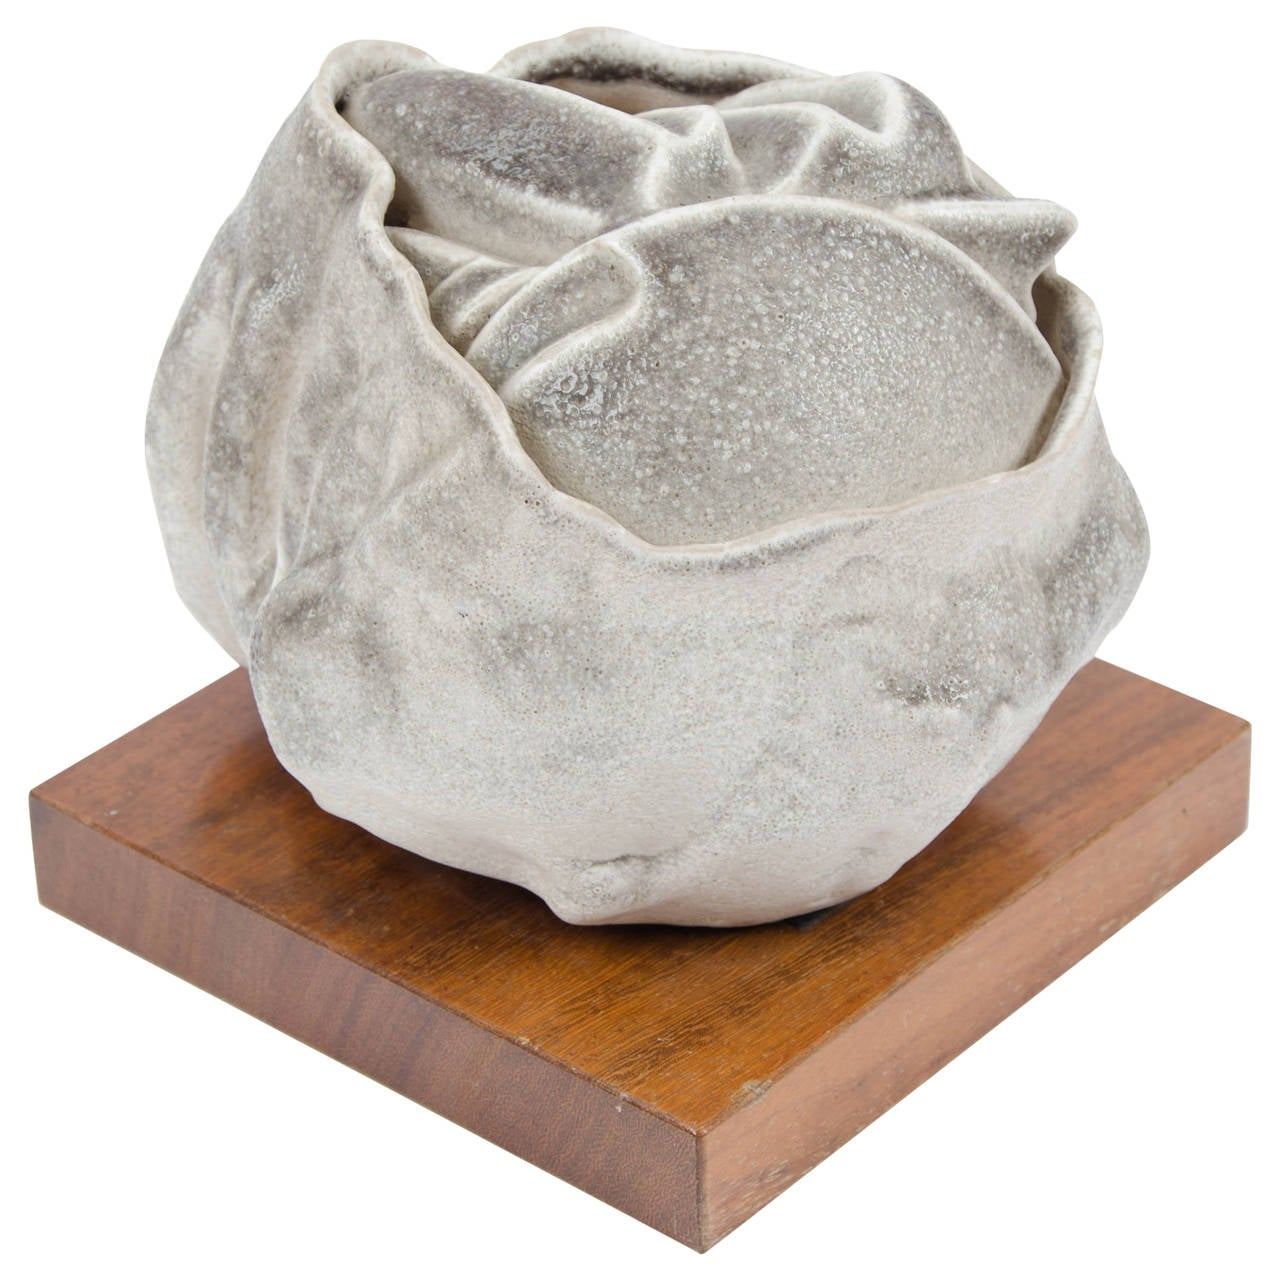 Stoneware Sculpture by Carlo Zauli